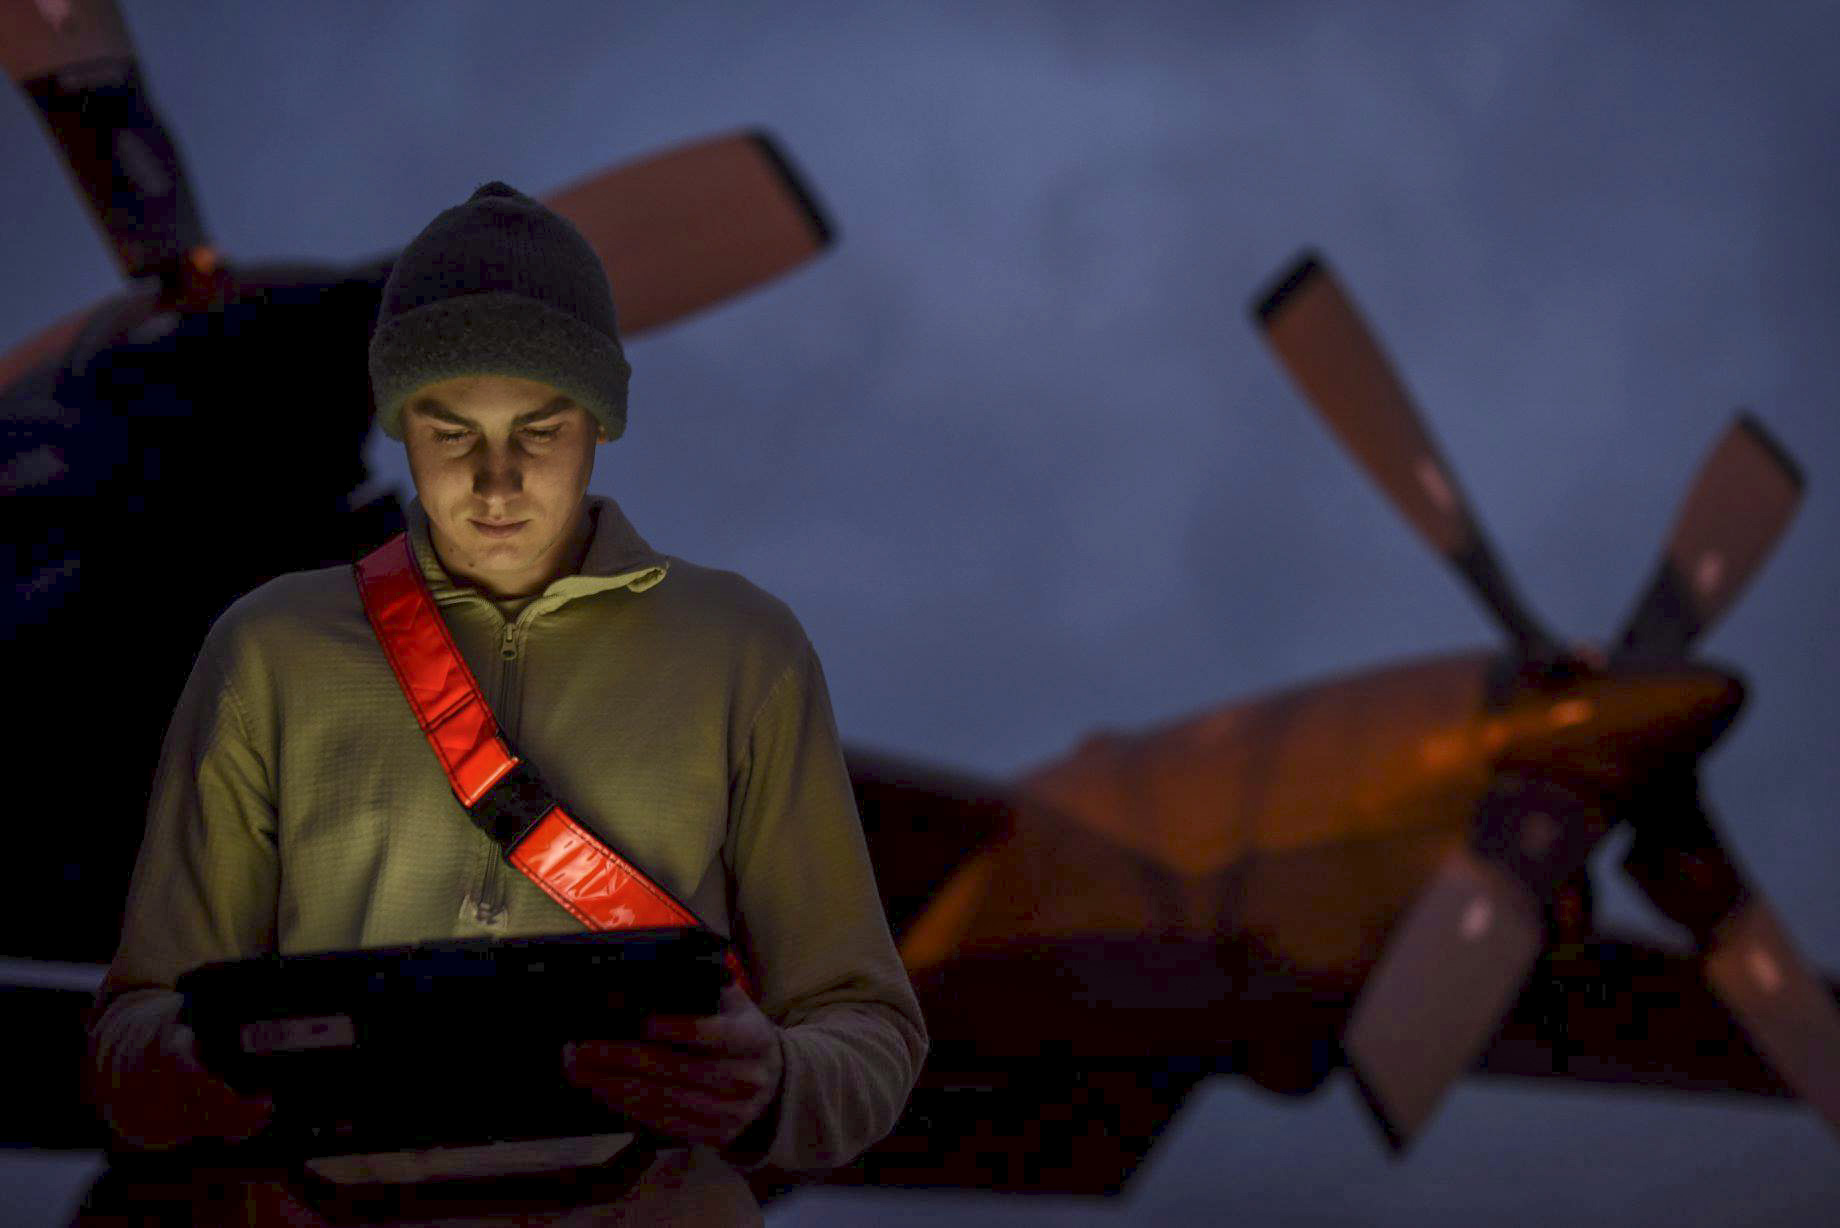 Airman 1st Class Matthew Cable, 4th Aircraft Maintenance Unit aerospace maintenance apprentice, reviews a technical order before starting preventative maintenance at Hurlburt Field, Fla., March 26, 2018. Maintainers with the 4th AMU work day and night to keep Hurlburt Field's aircraft ready for global operations. (A1C Caleb Pavao/Air Force)